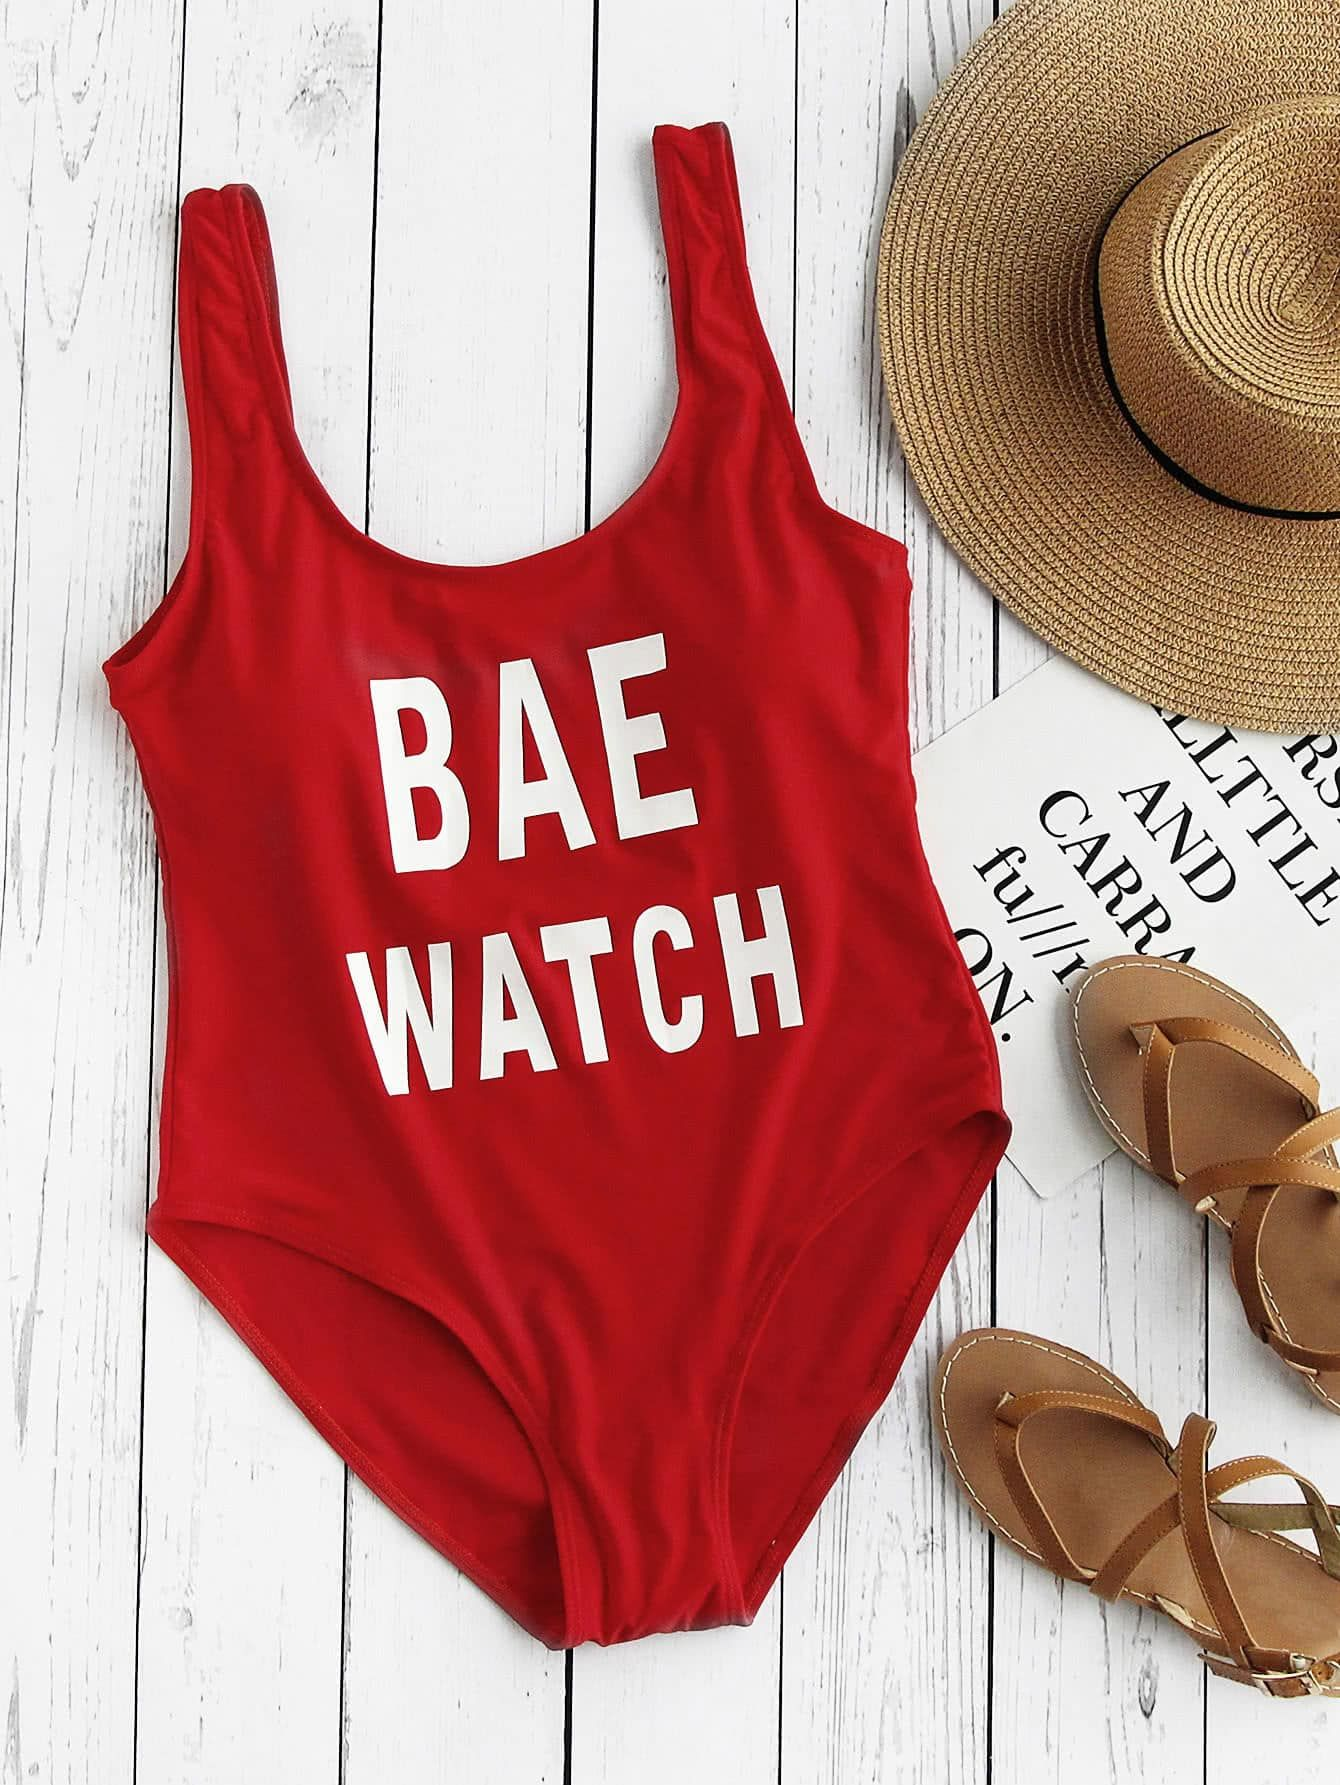 Letter Print Scoop Neck One Piece Swimsuit One Piece Swimsuits Printed Bikini Sets